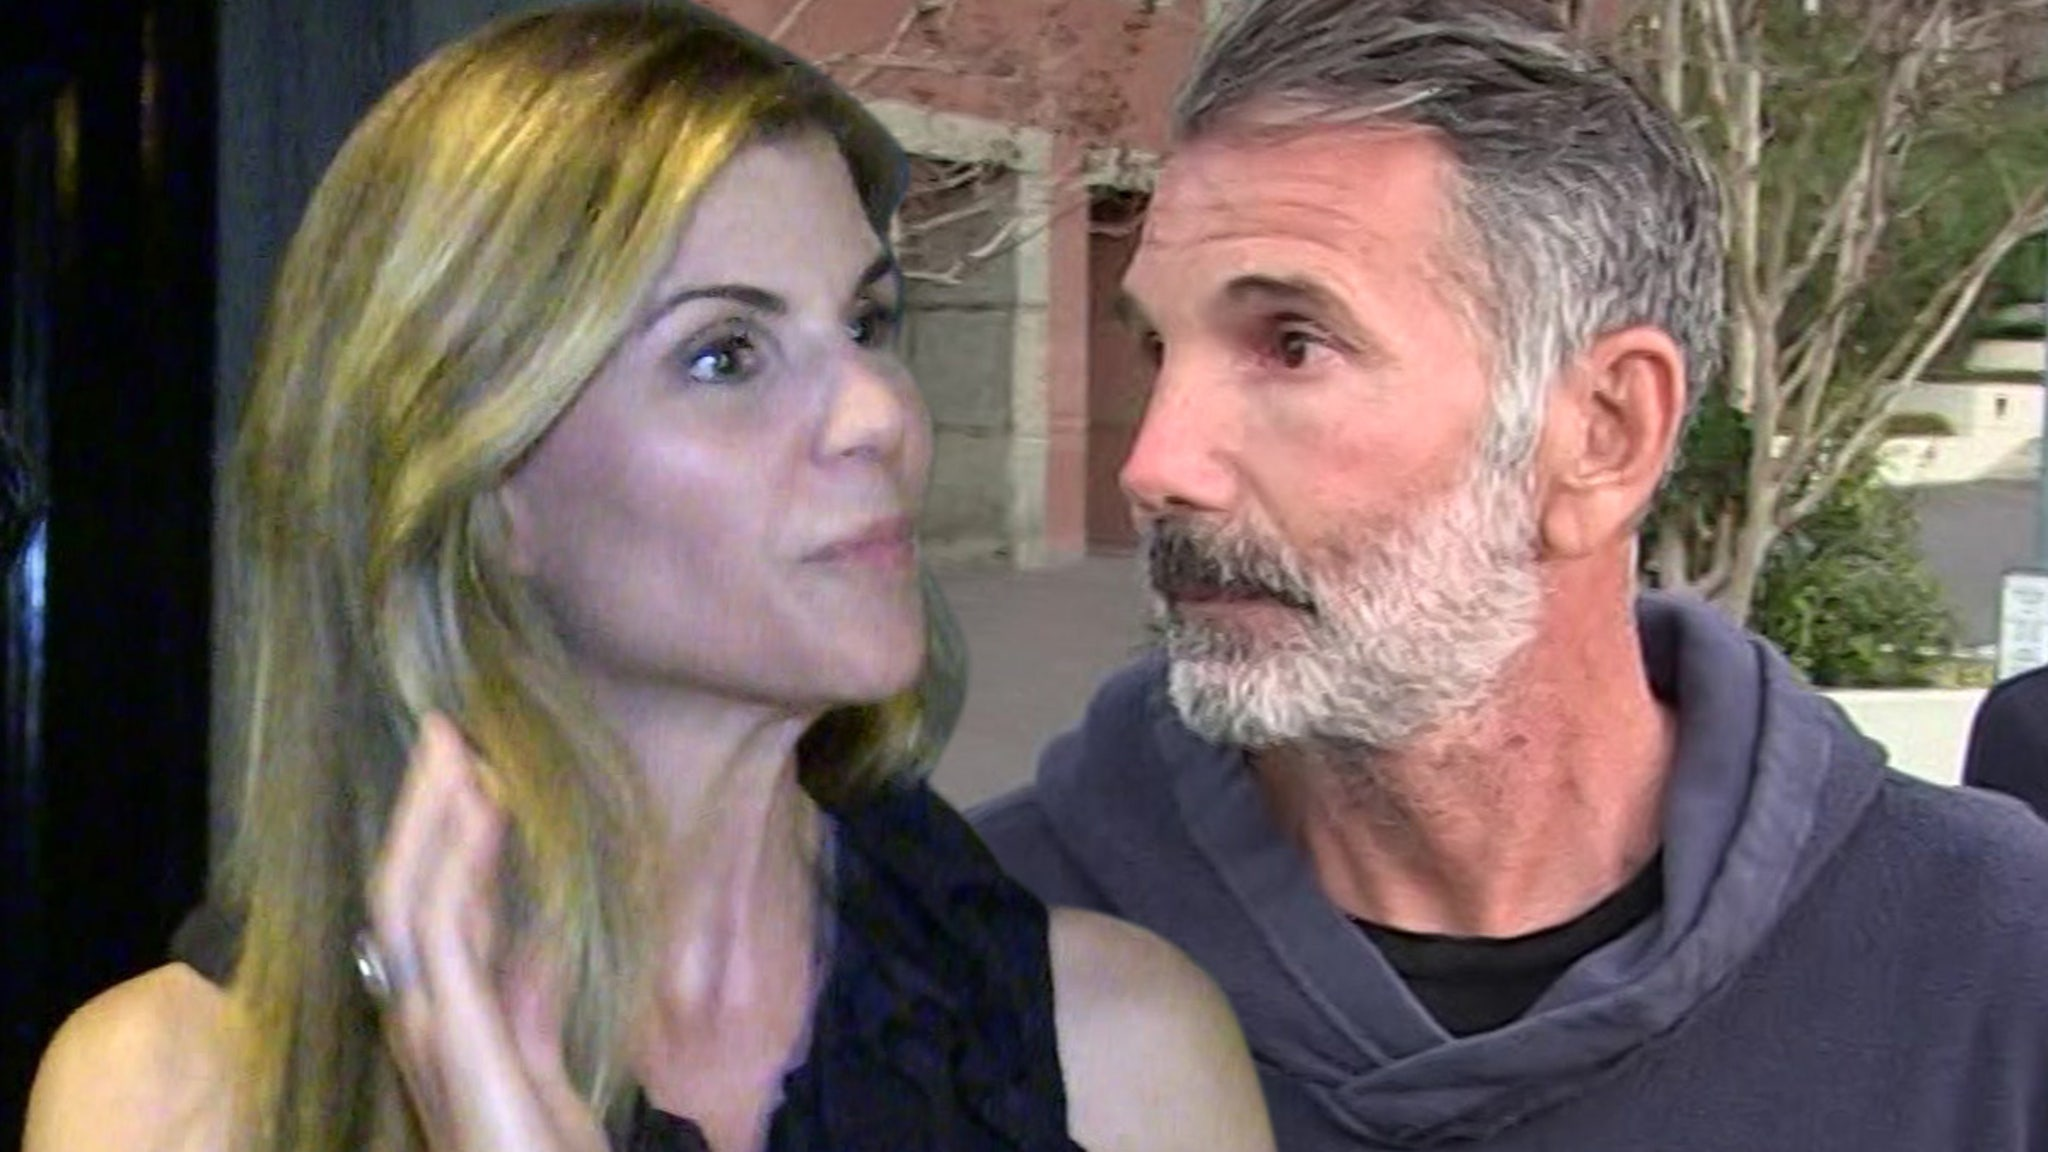 Lori Loughlin, Mossimo Giannulli Face Sentencing in College Admissions Scandal thumbnail